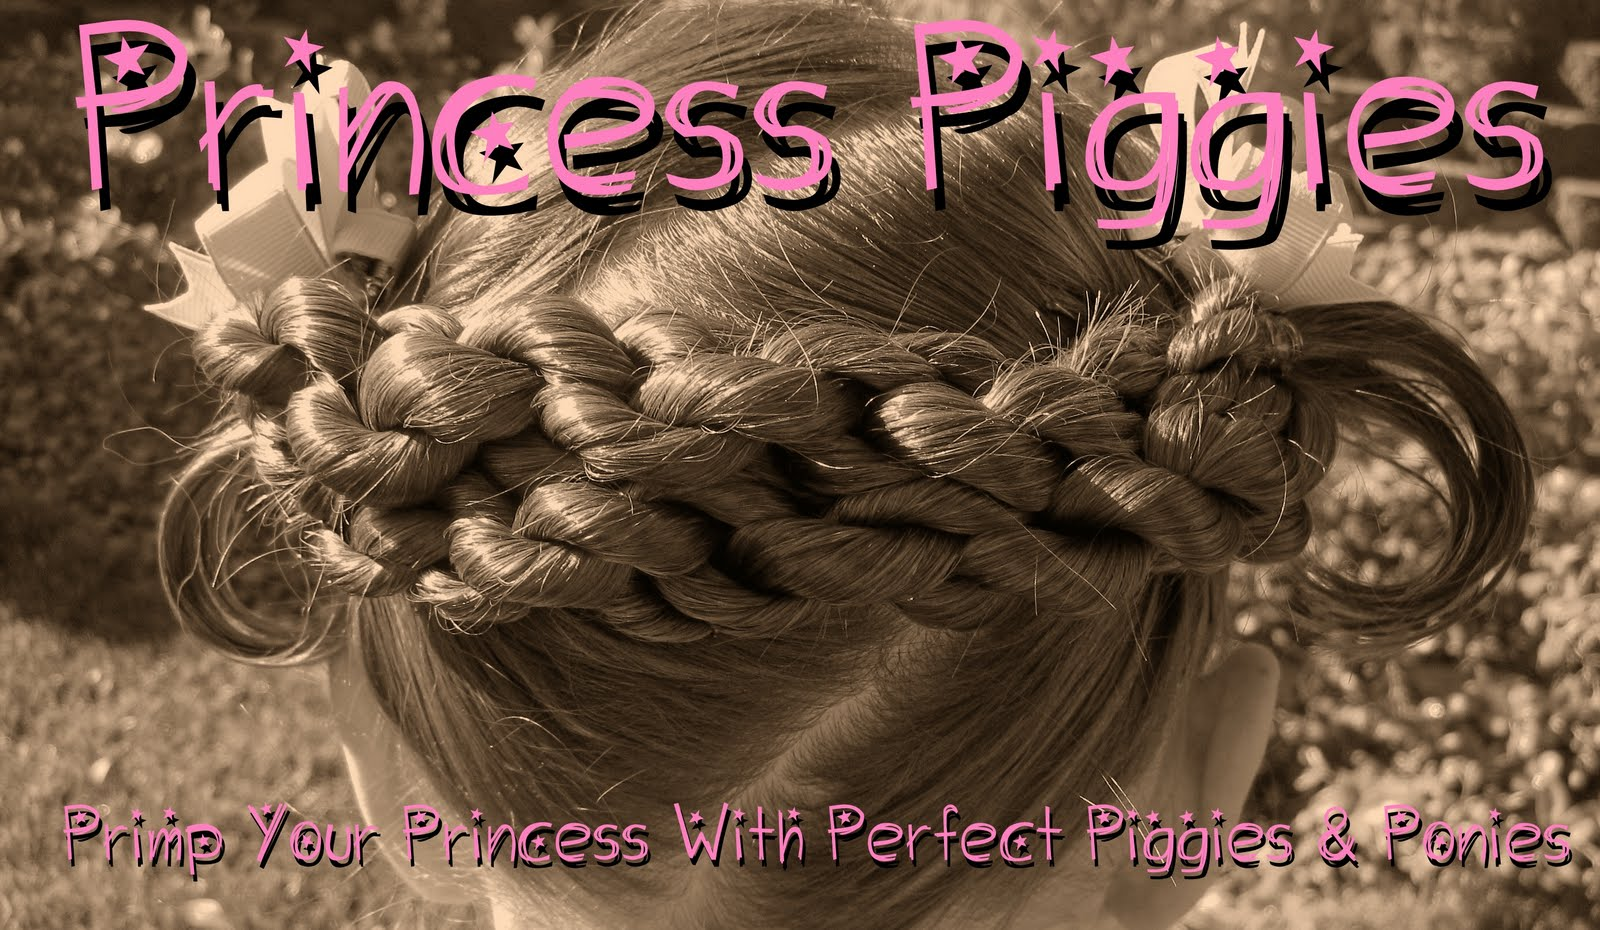 Princess Piggies